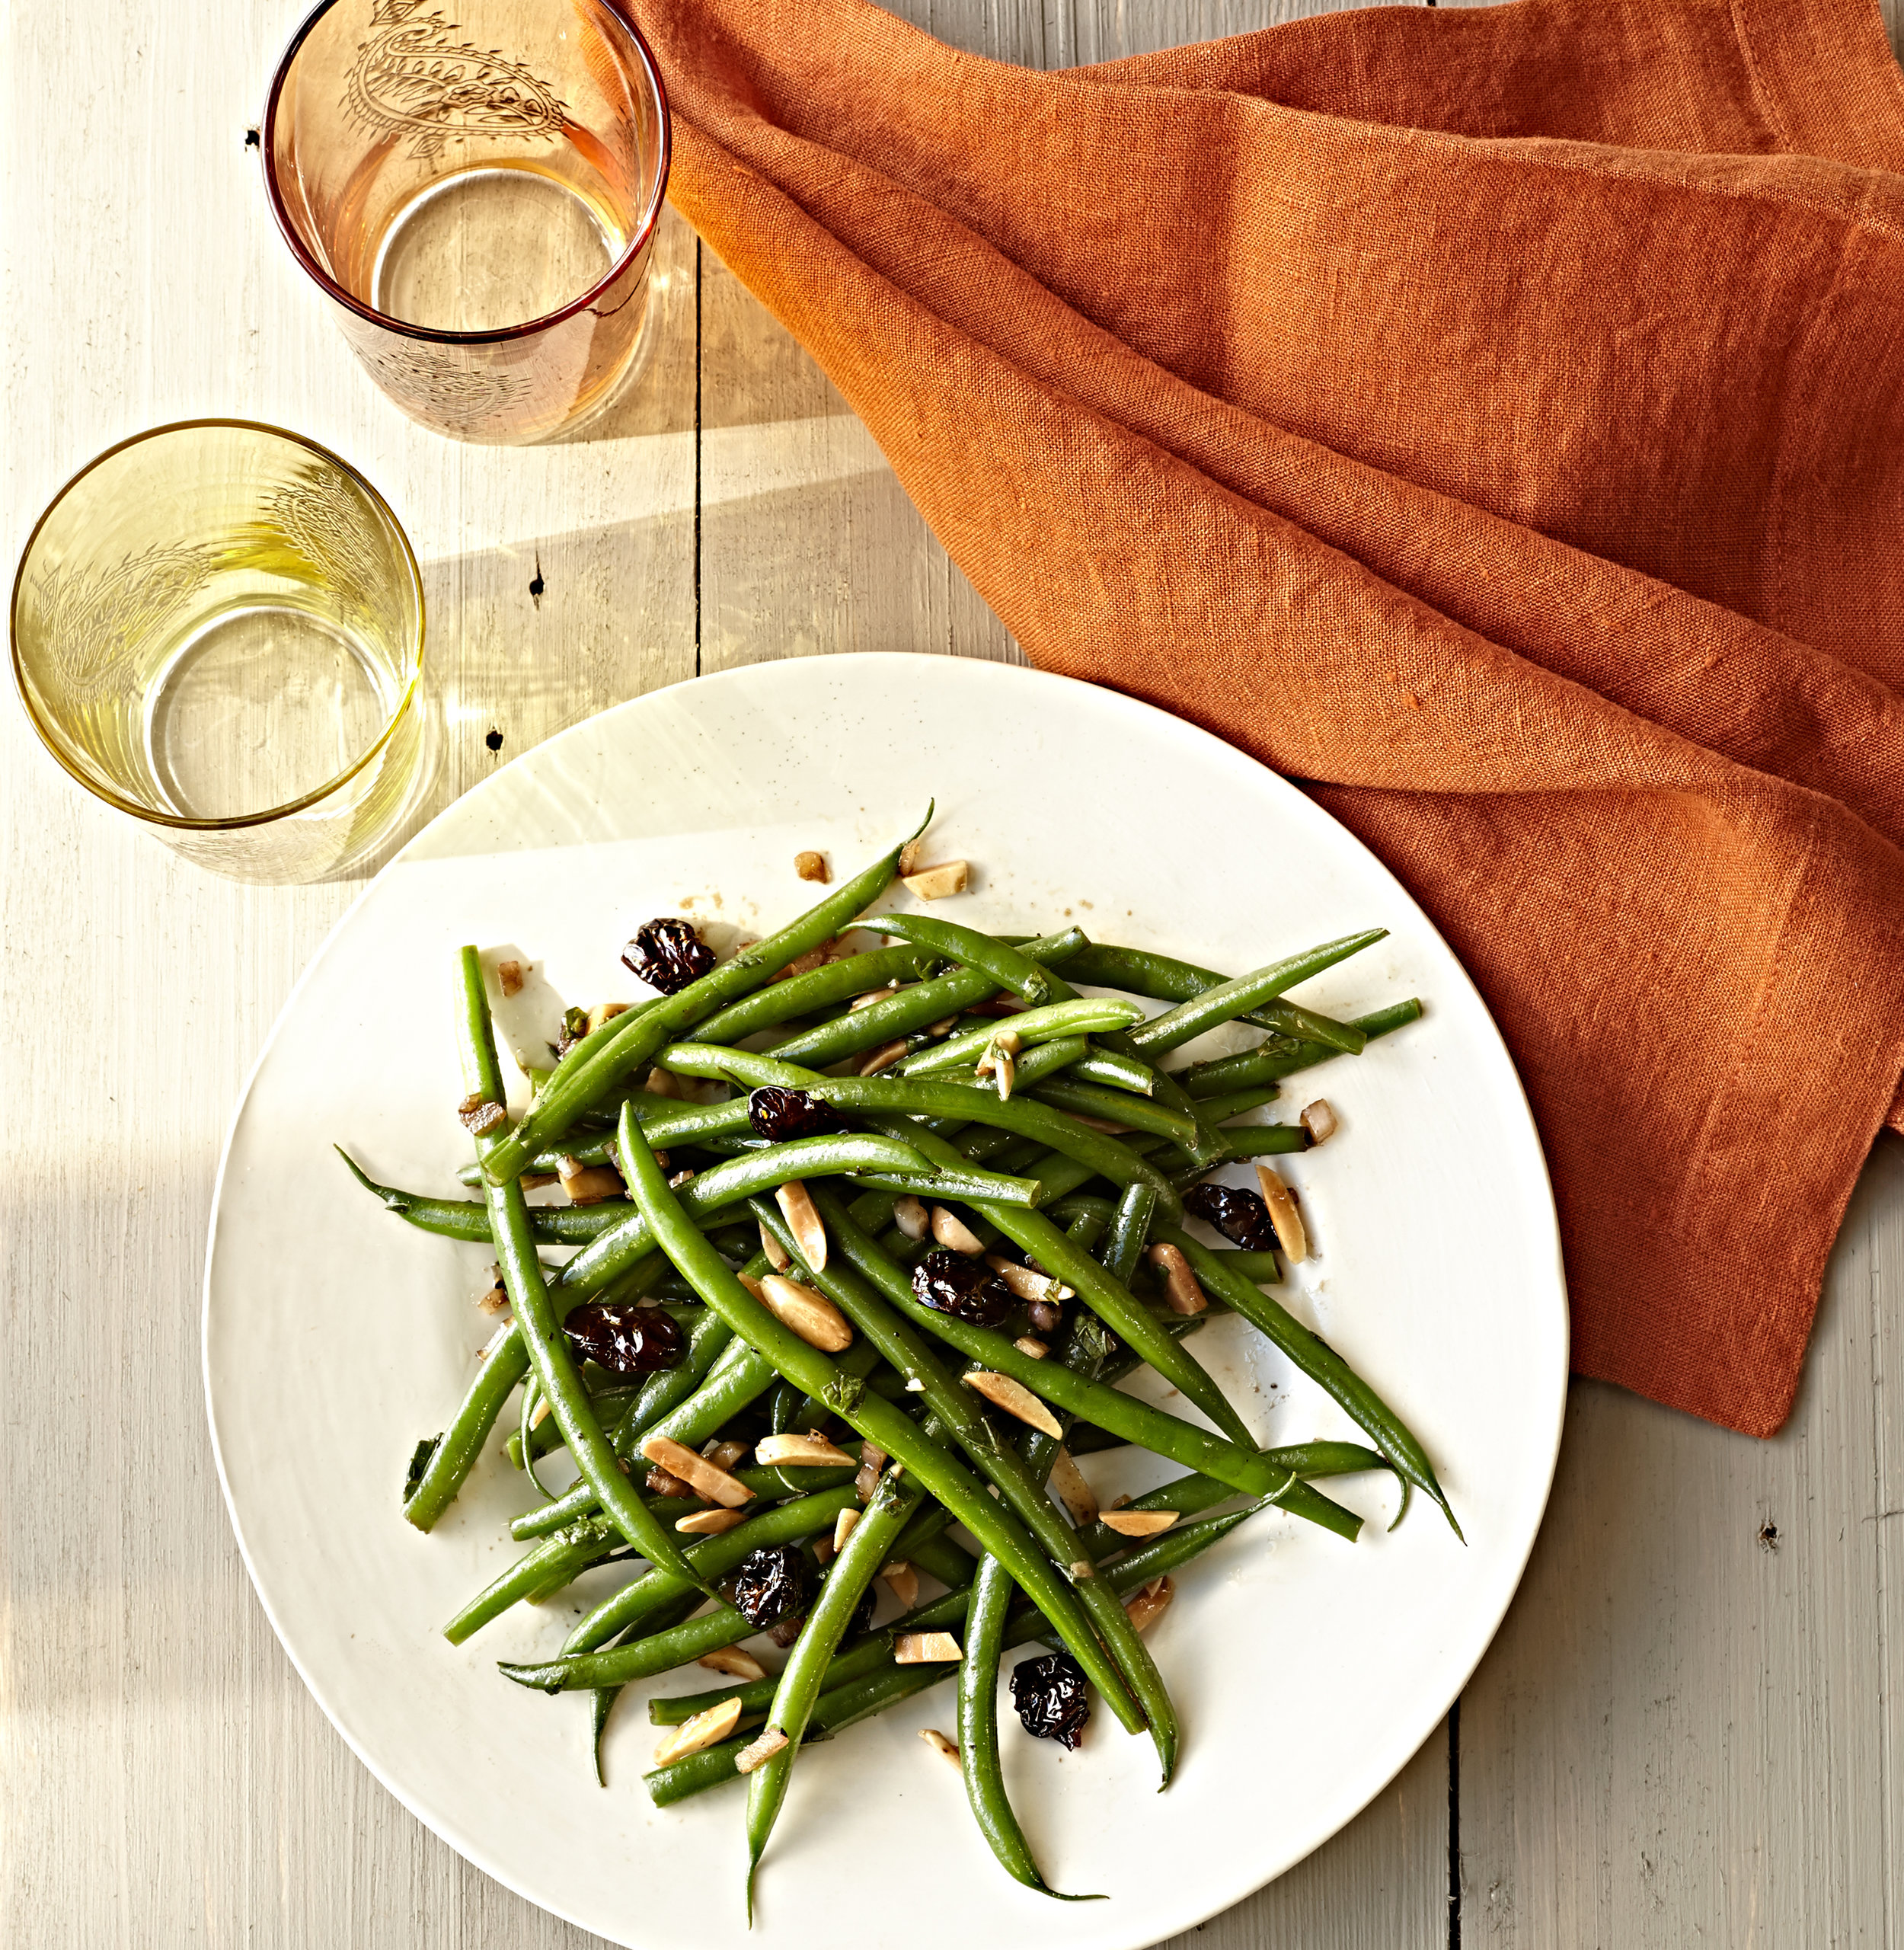 Green bean salad with toasted almonds and tart cherry vinaigrette